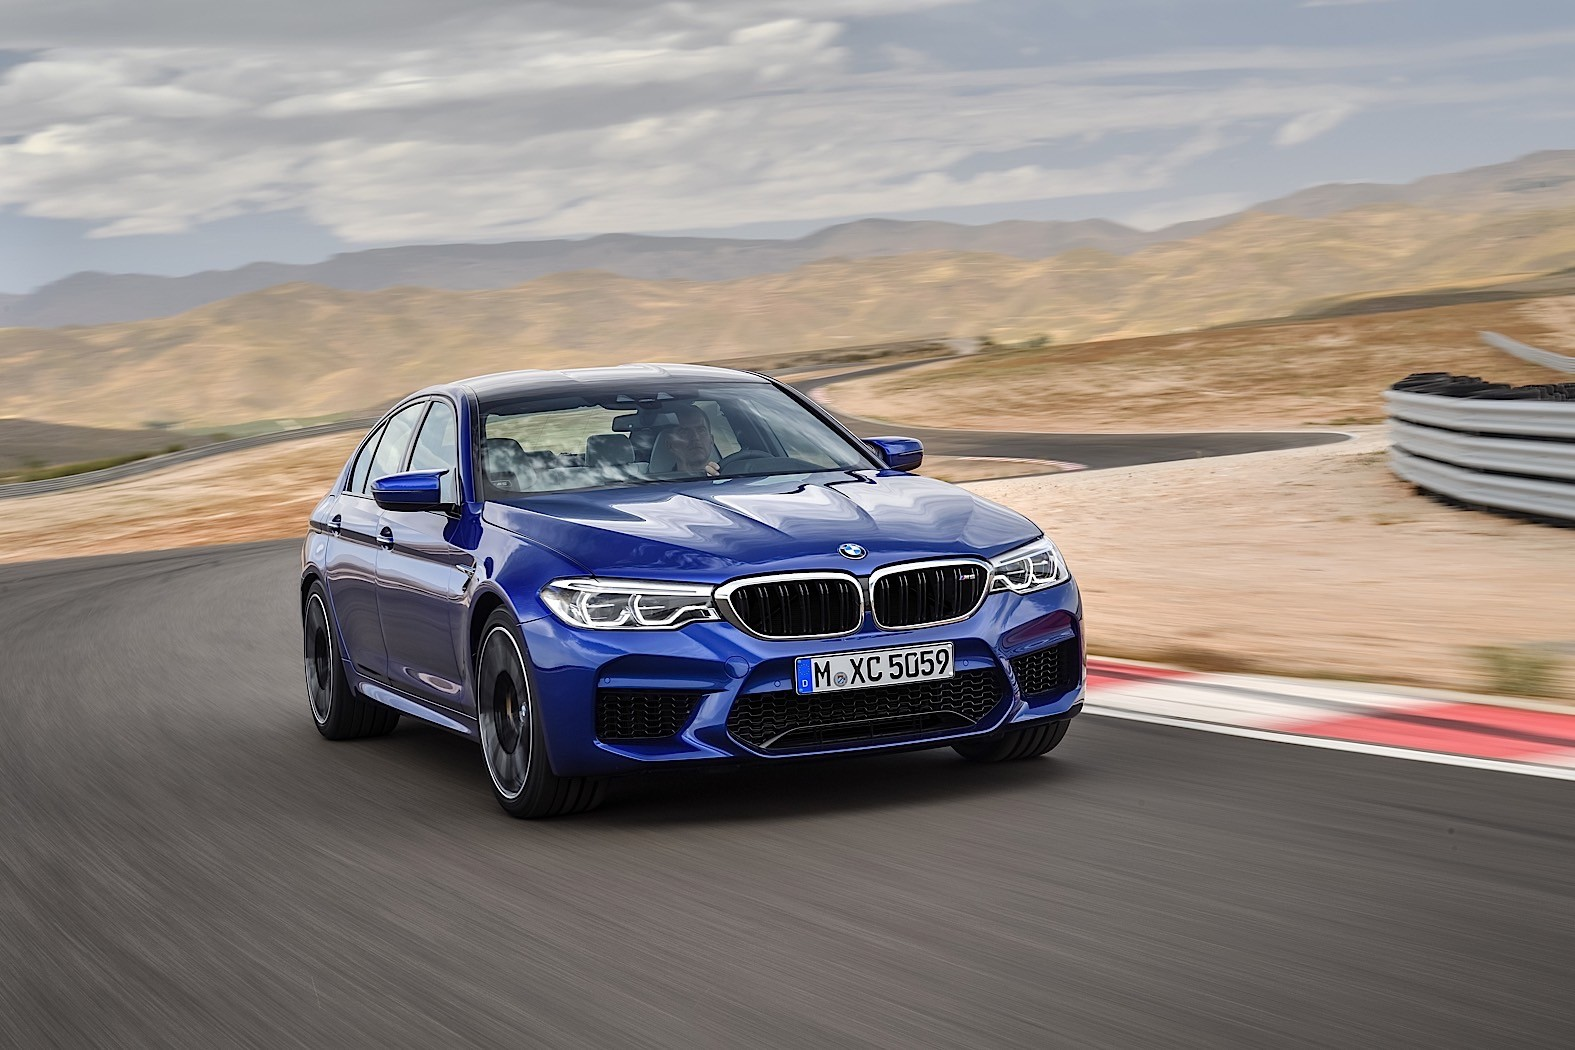 2018 bmw m5 competition package expected in april with 625 hp autoevolution. Black Bedroom Furniture Sets. Home Design Ideas